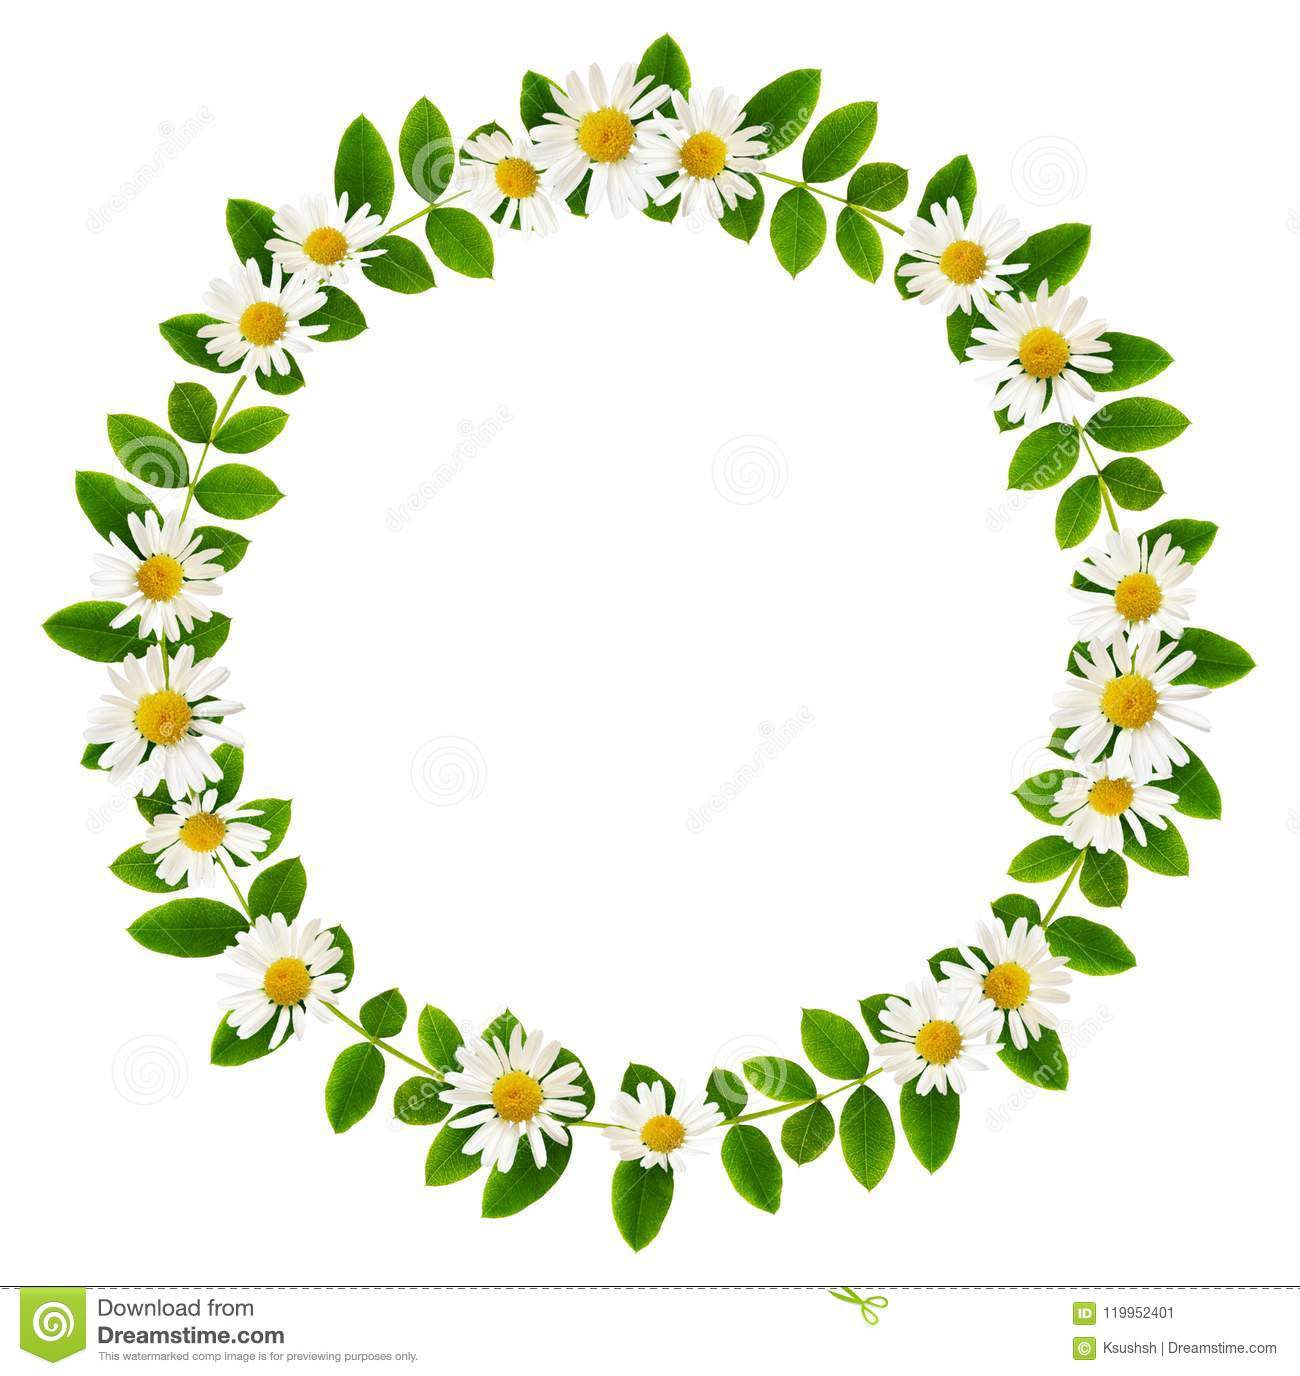 Fresh green leaves of Siberian peashrub and daisy flowers in a r